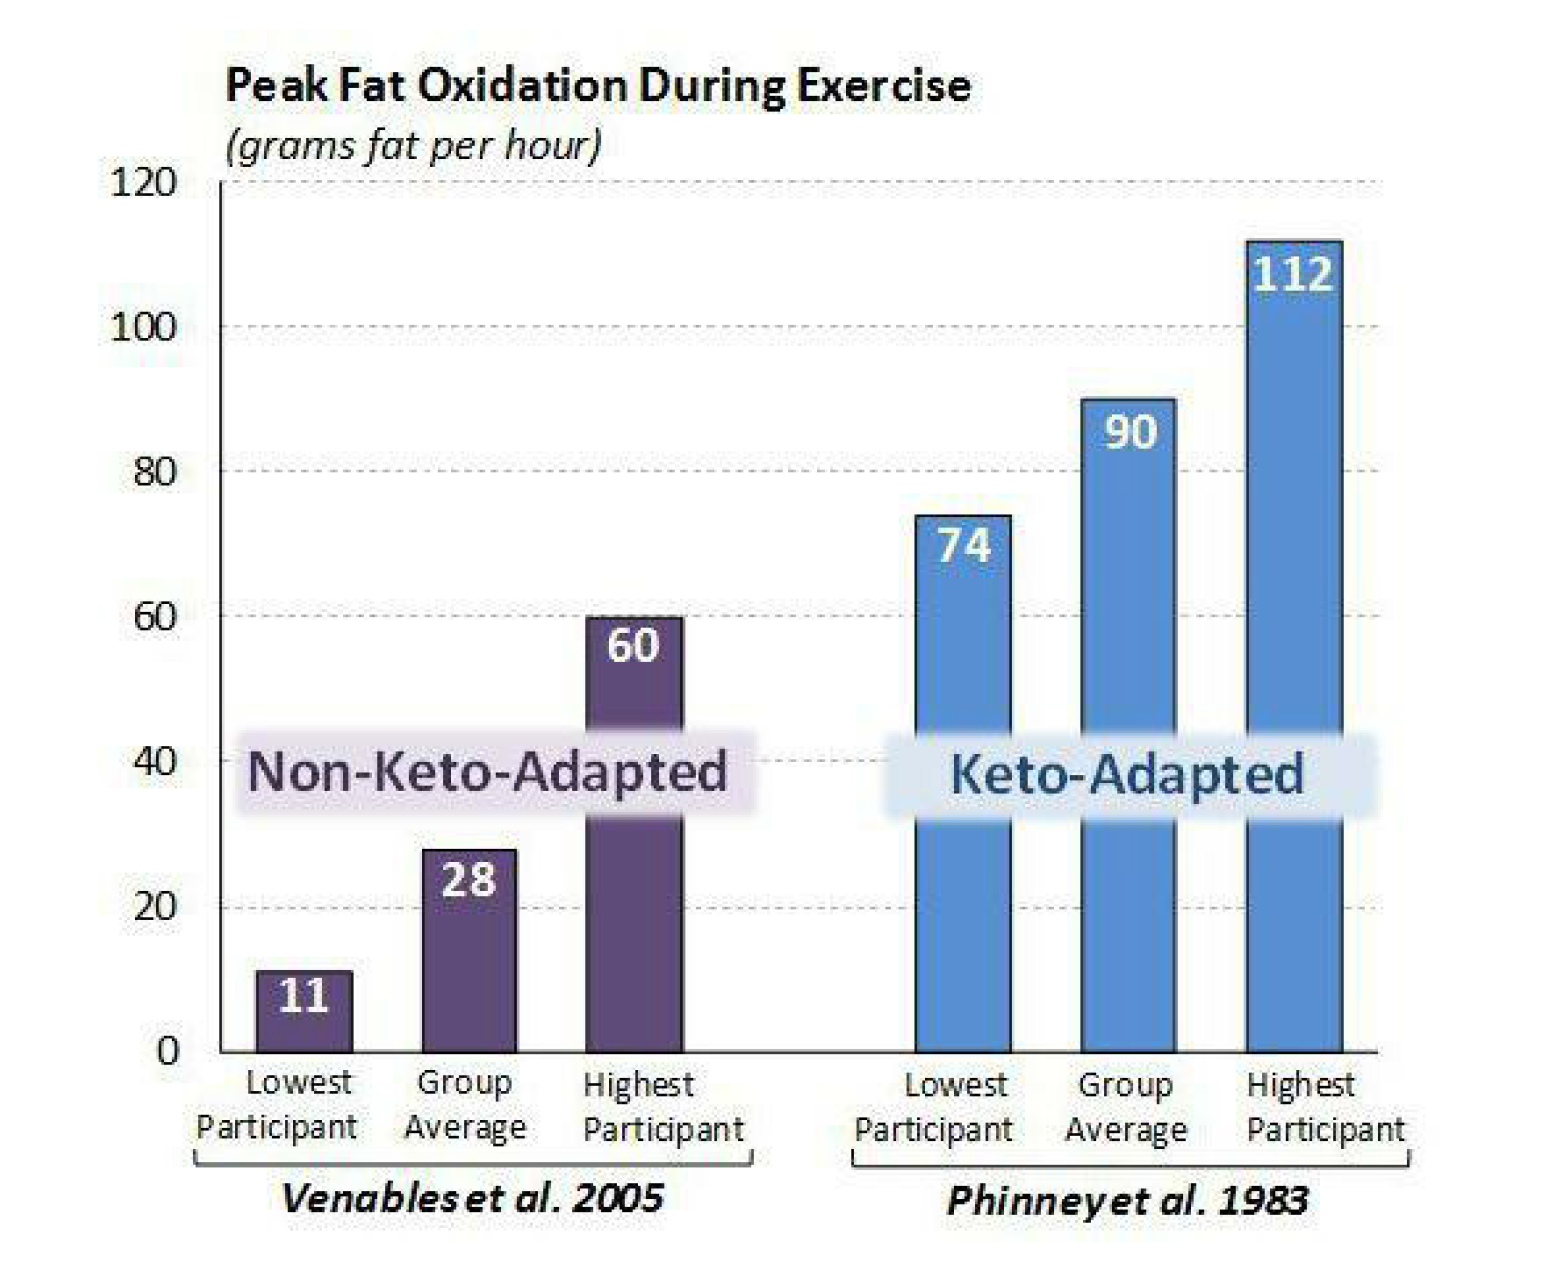 Keto-Adapted Download